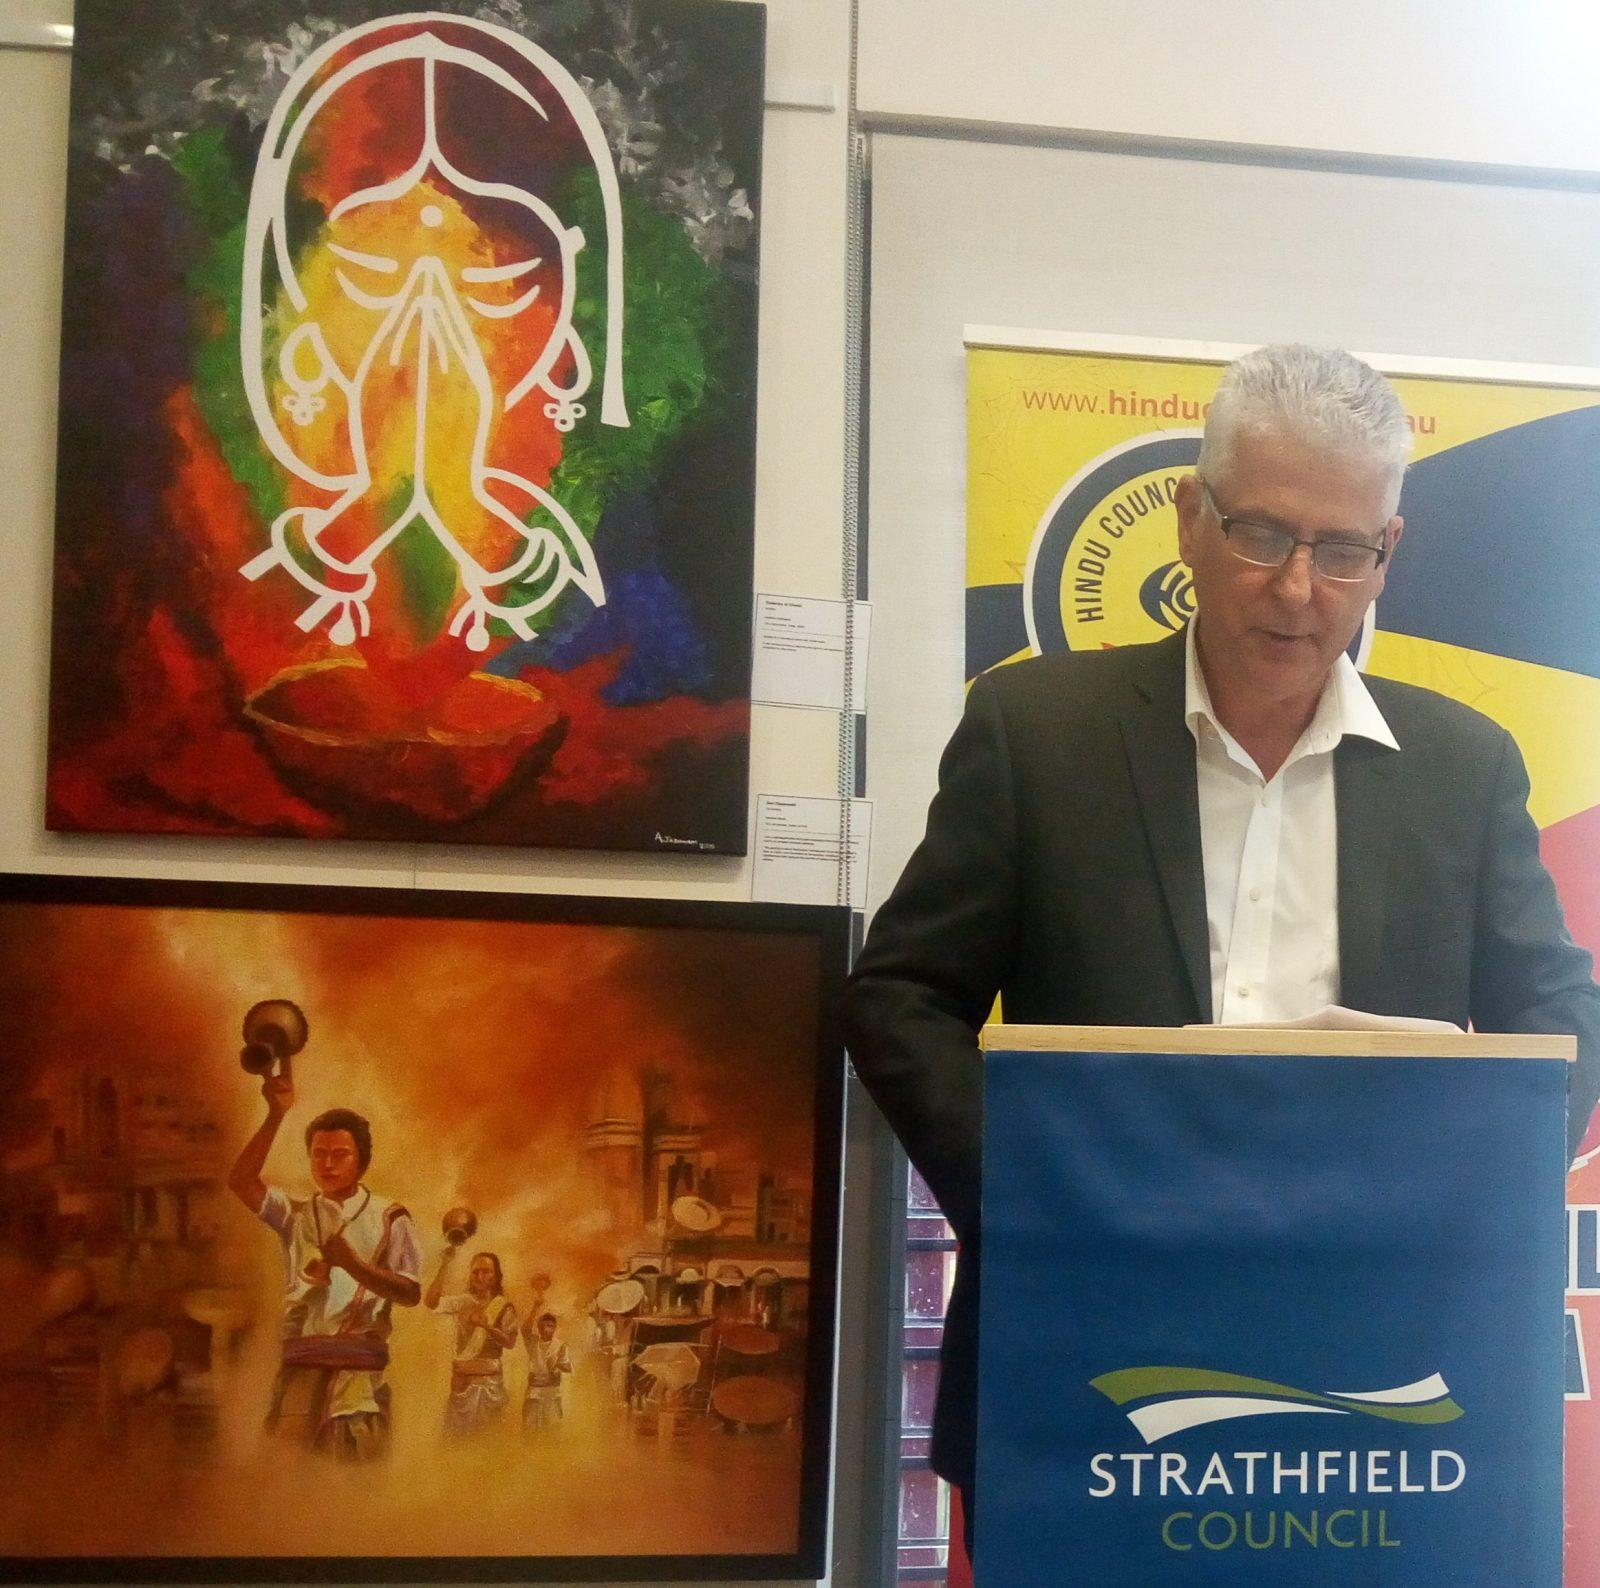 Diwali ArtSpace exhibition opened by Mayor of Strathfield